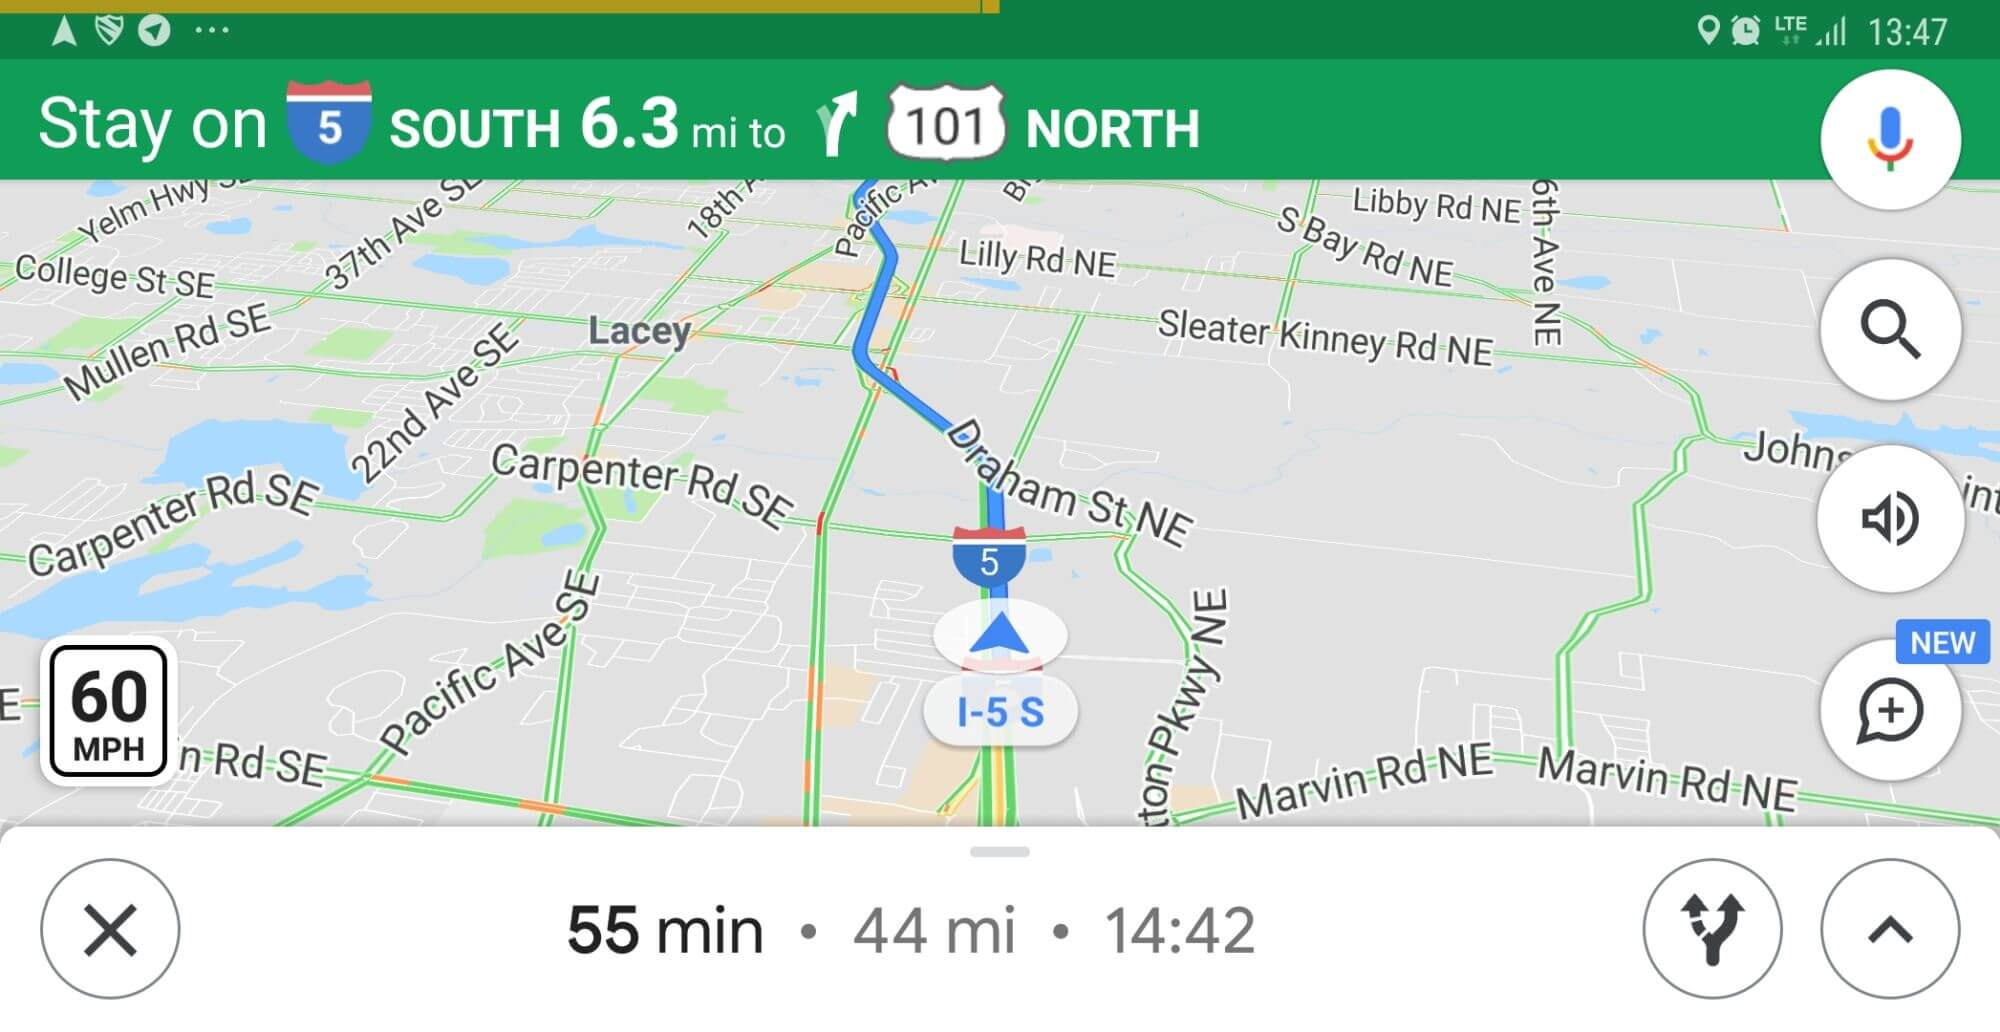 Google Maps Will Now Show Sd Limits Everywhere - Gate ... on show home, show longitude, show italian flag, show art, show a book, show game, show the planet mars,